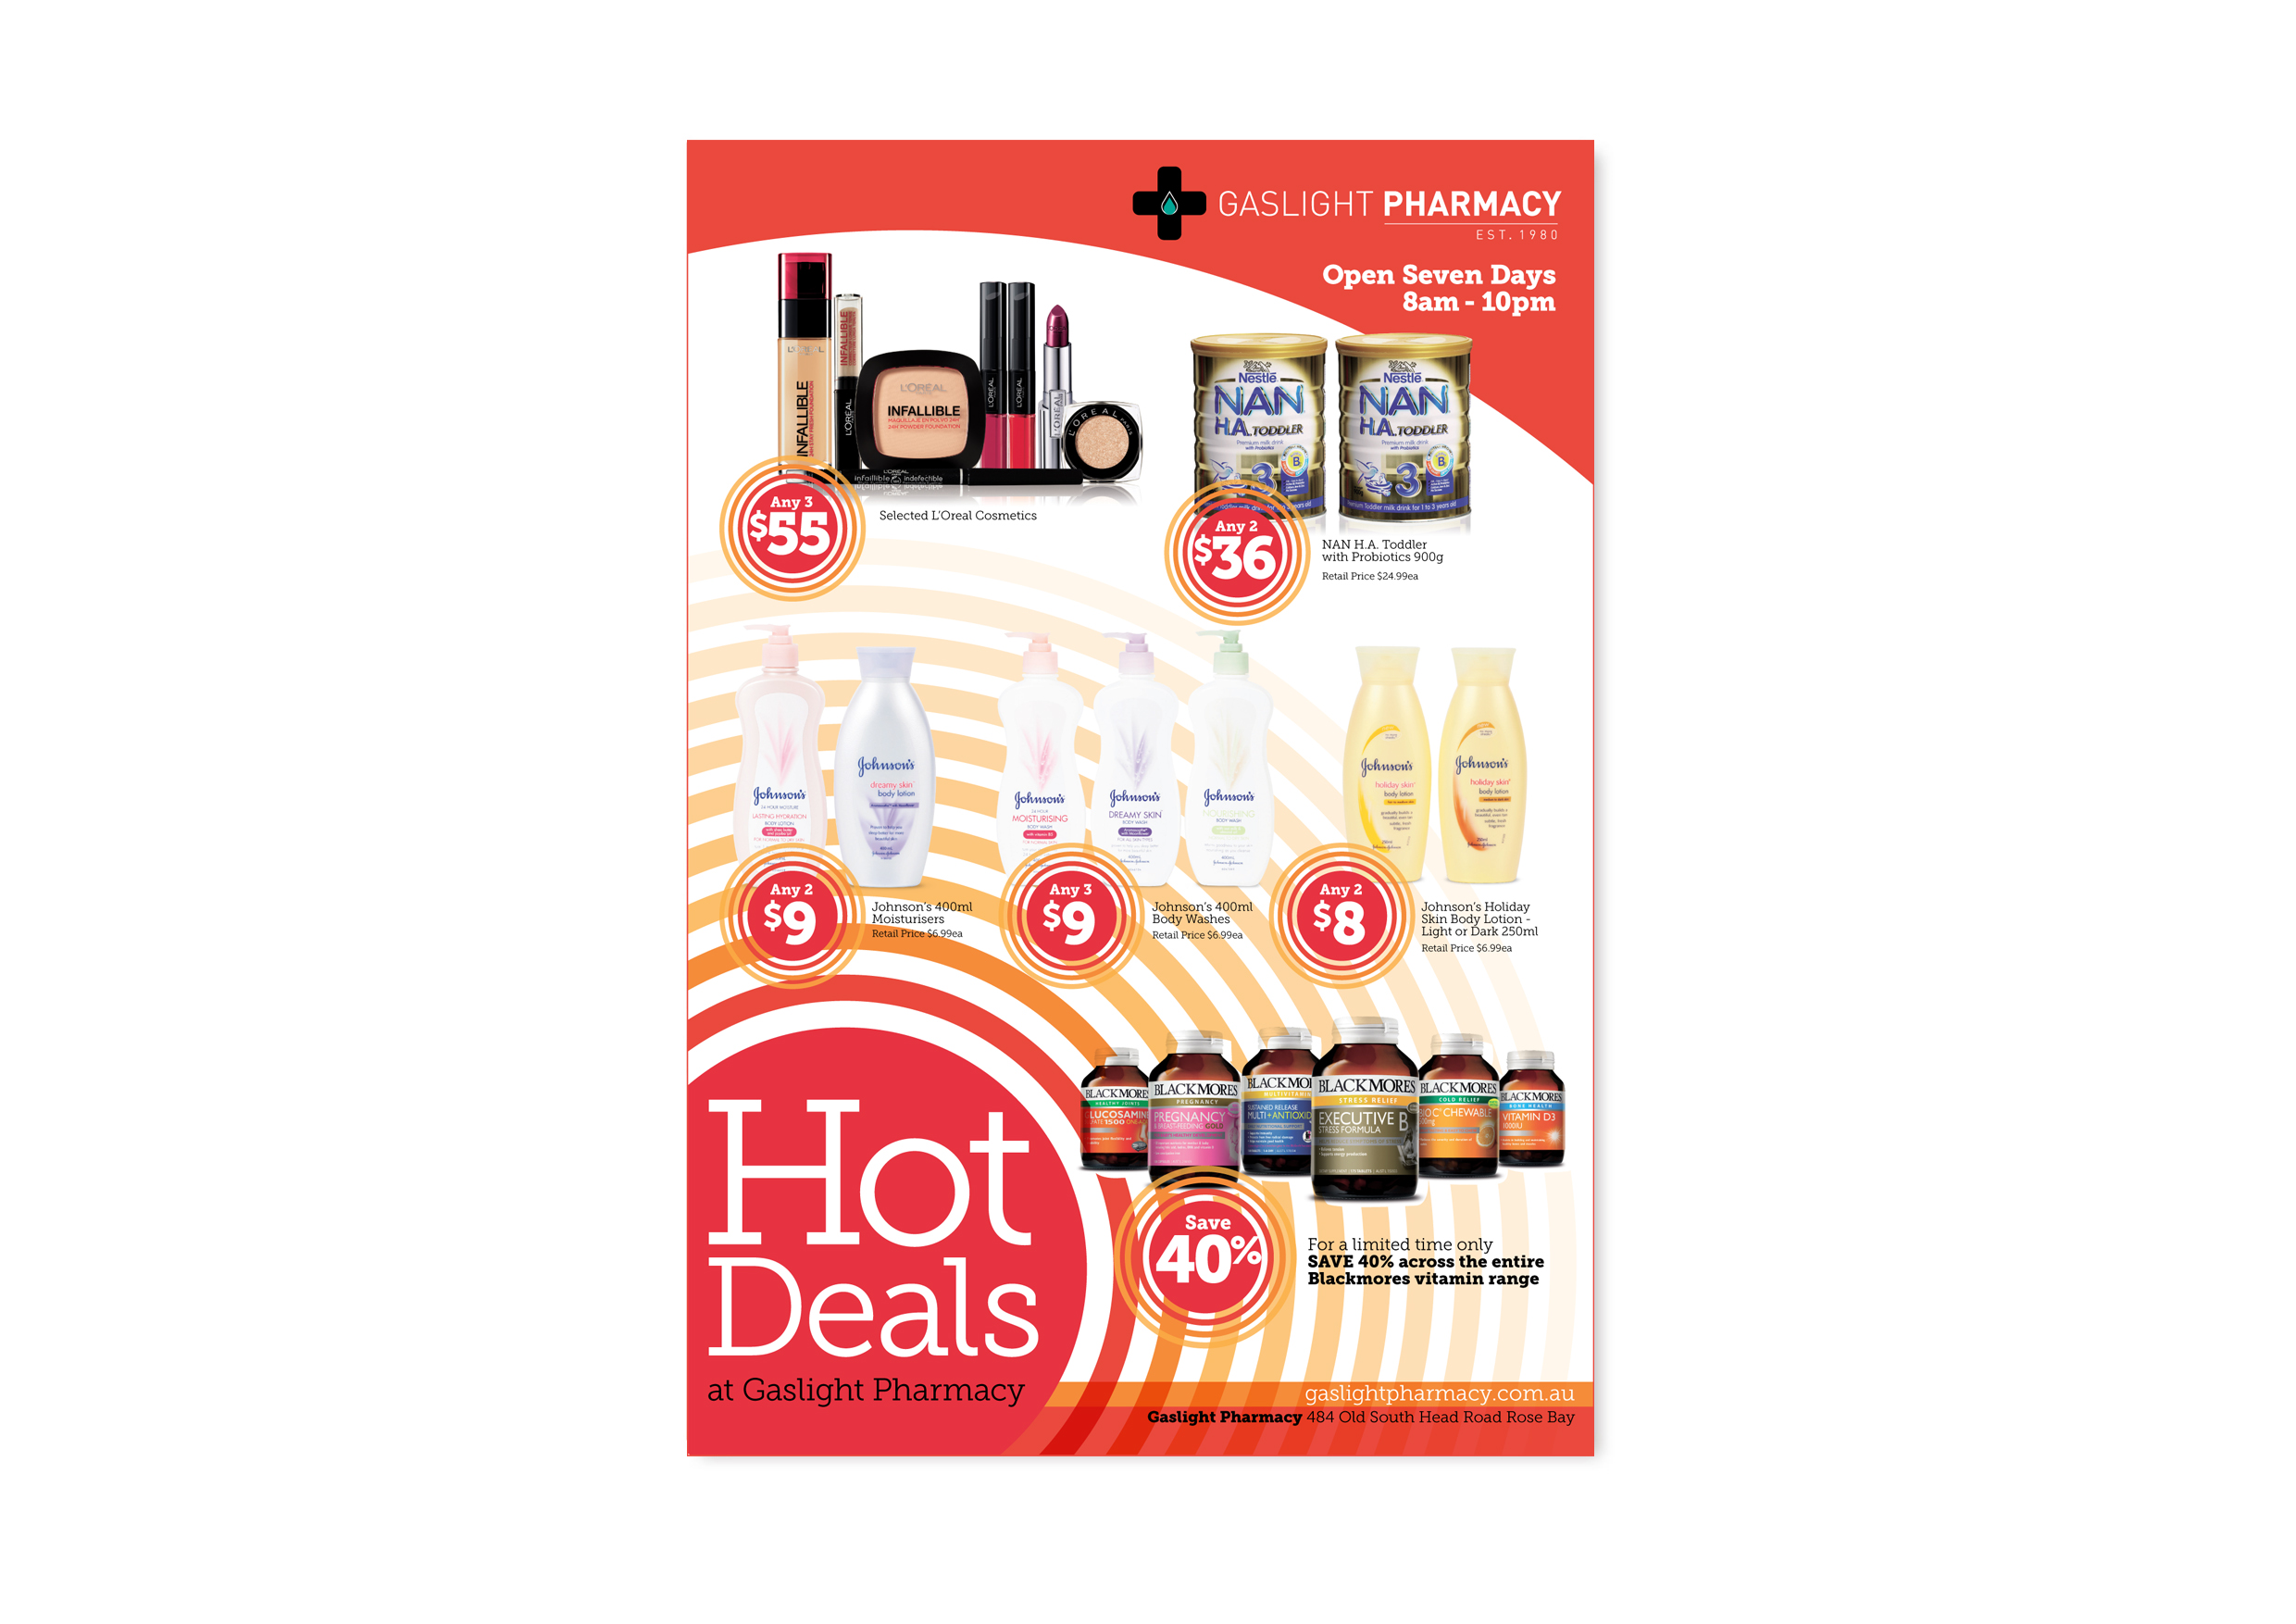 HOT DEALS FULL PAGE AD